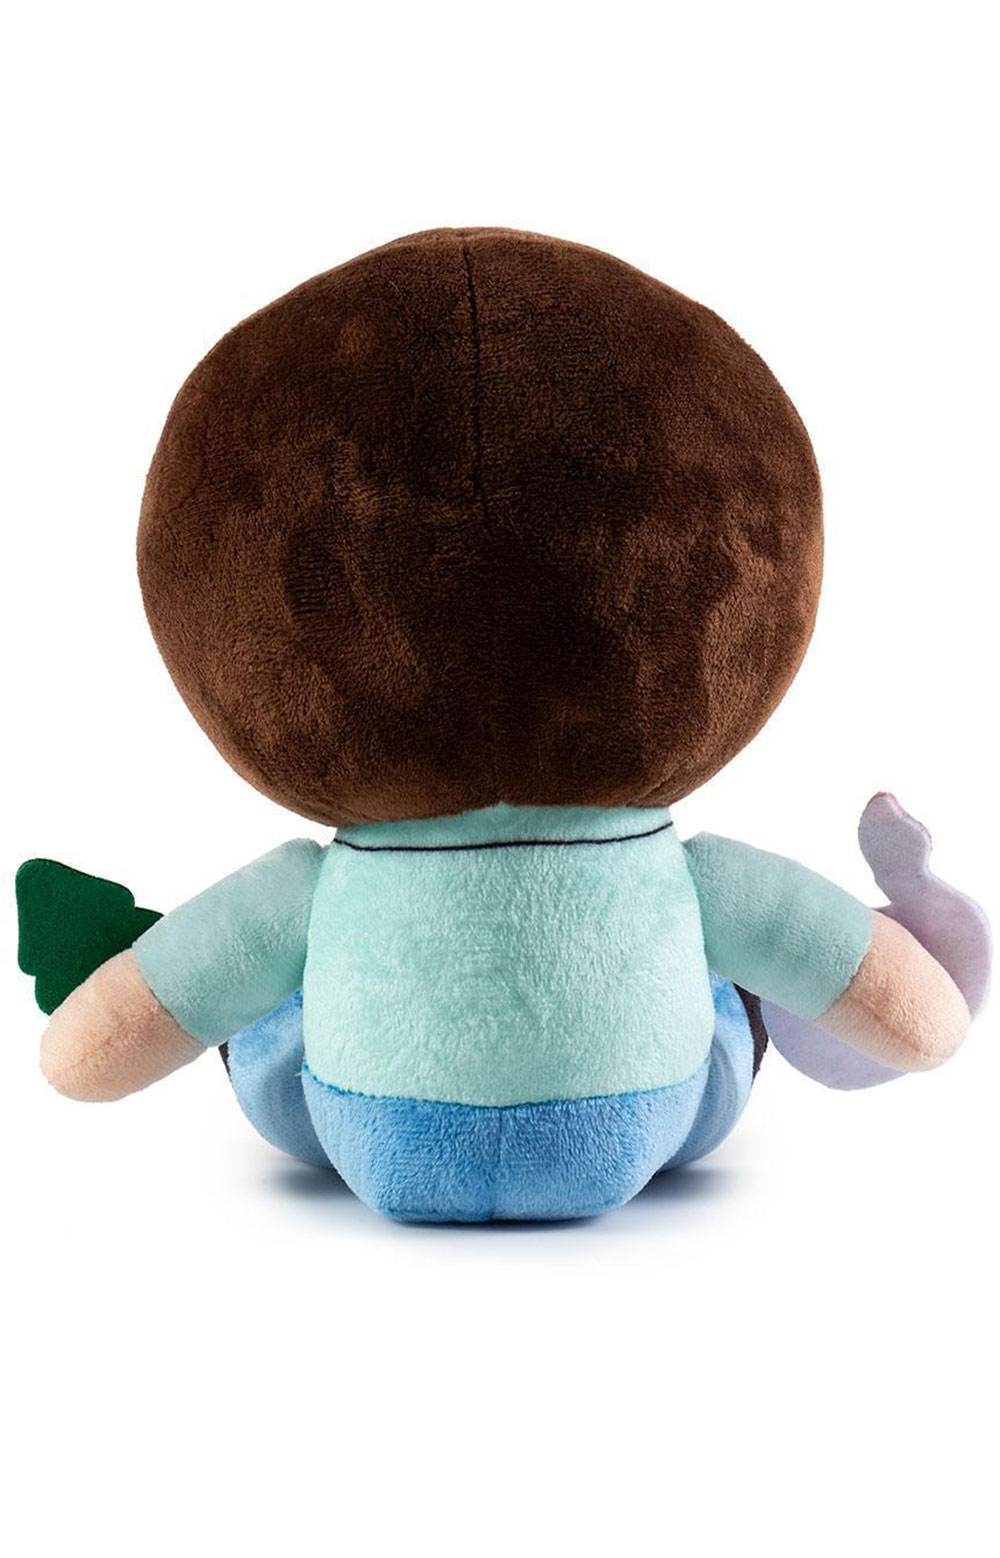 Bob Ross Phunny Plush Toy  4